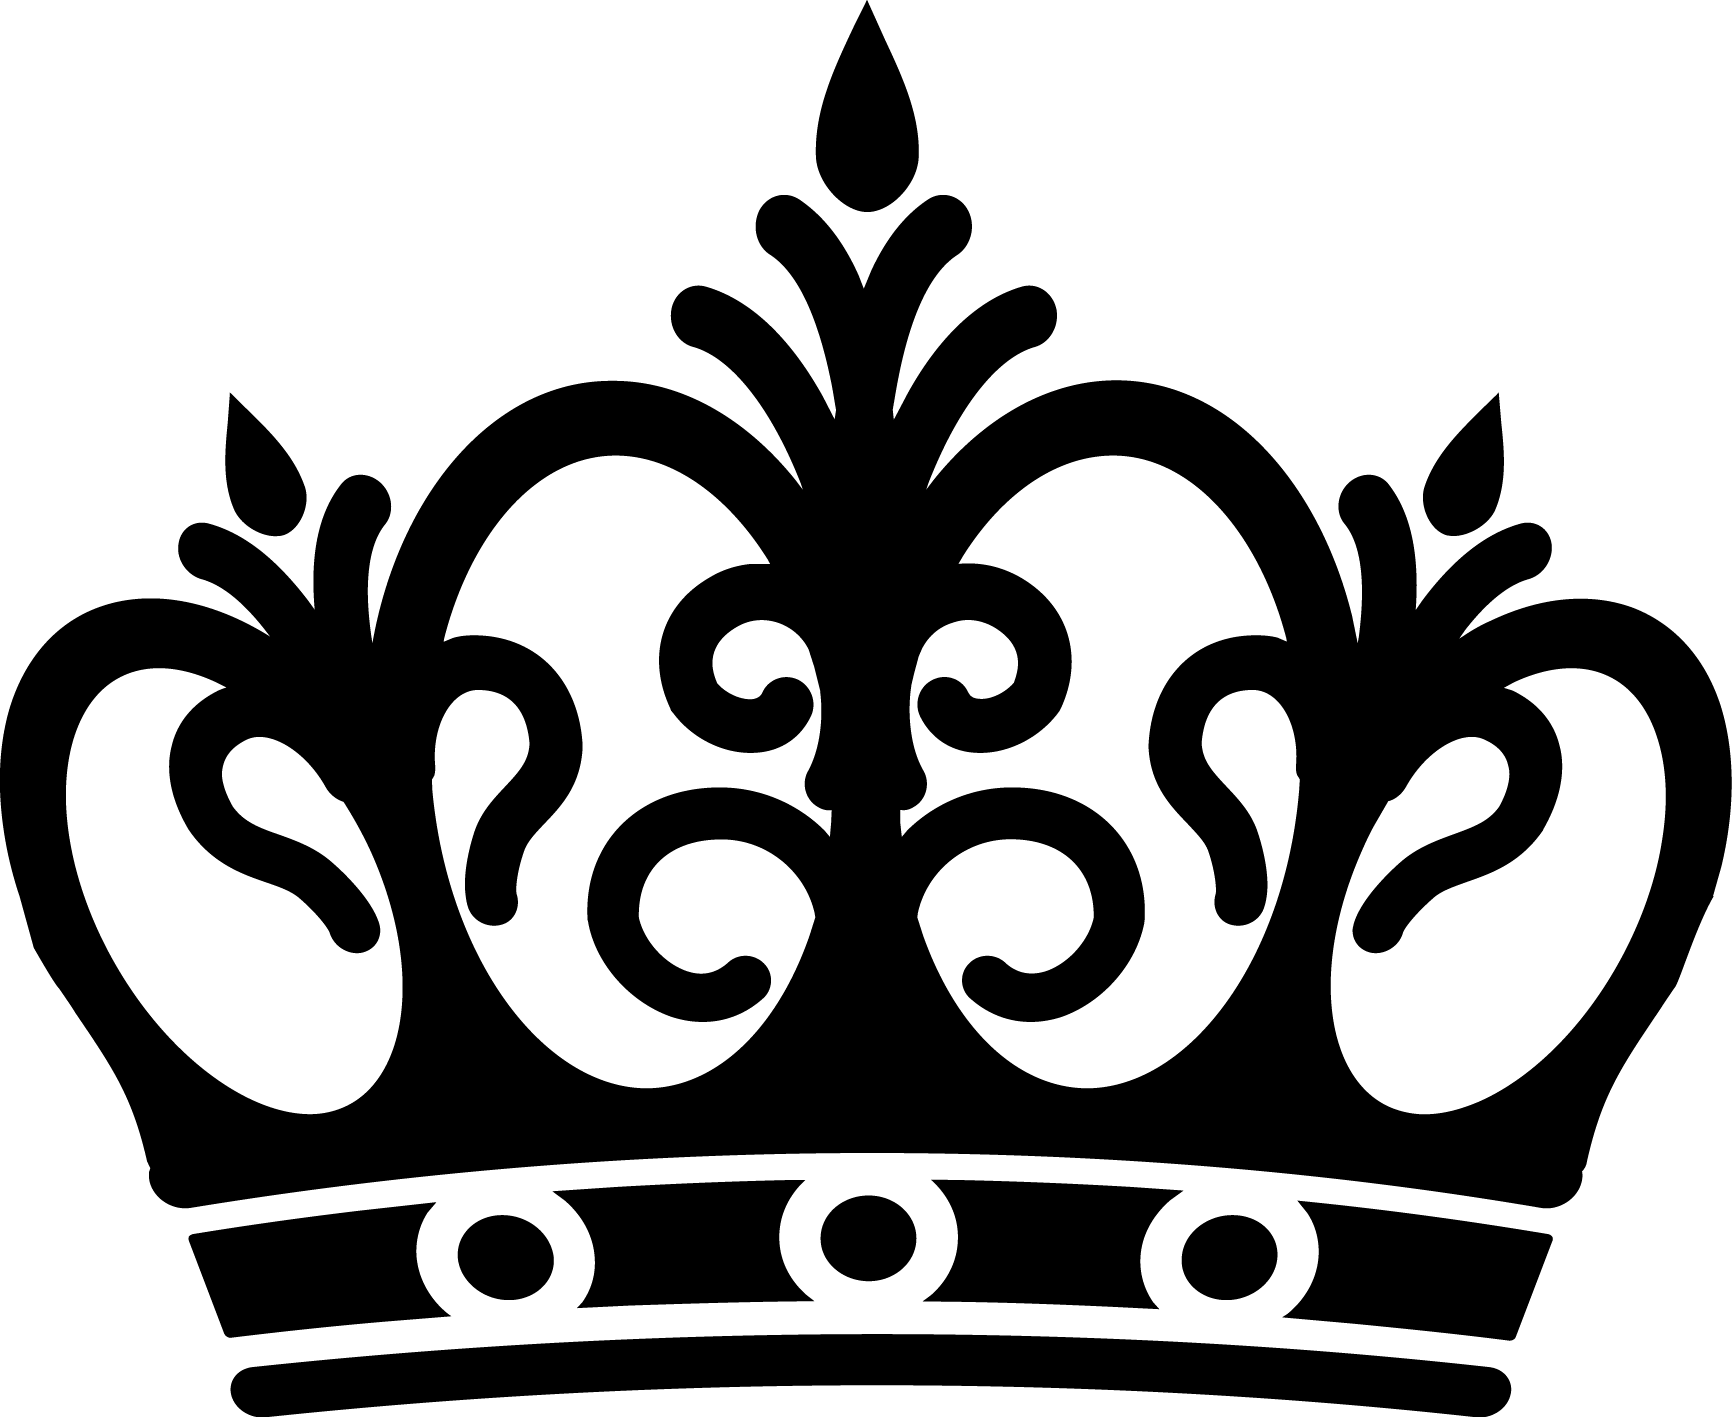 King crown clipart free vector transparent stock Crown Drawing Images at GetDrawings.com | Free for personal use ... vector transparent stock